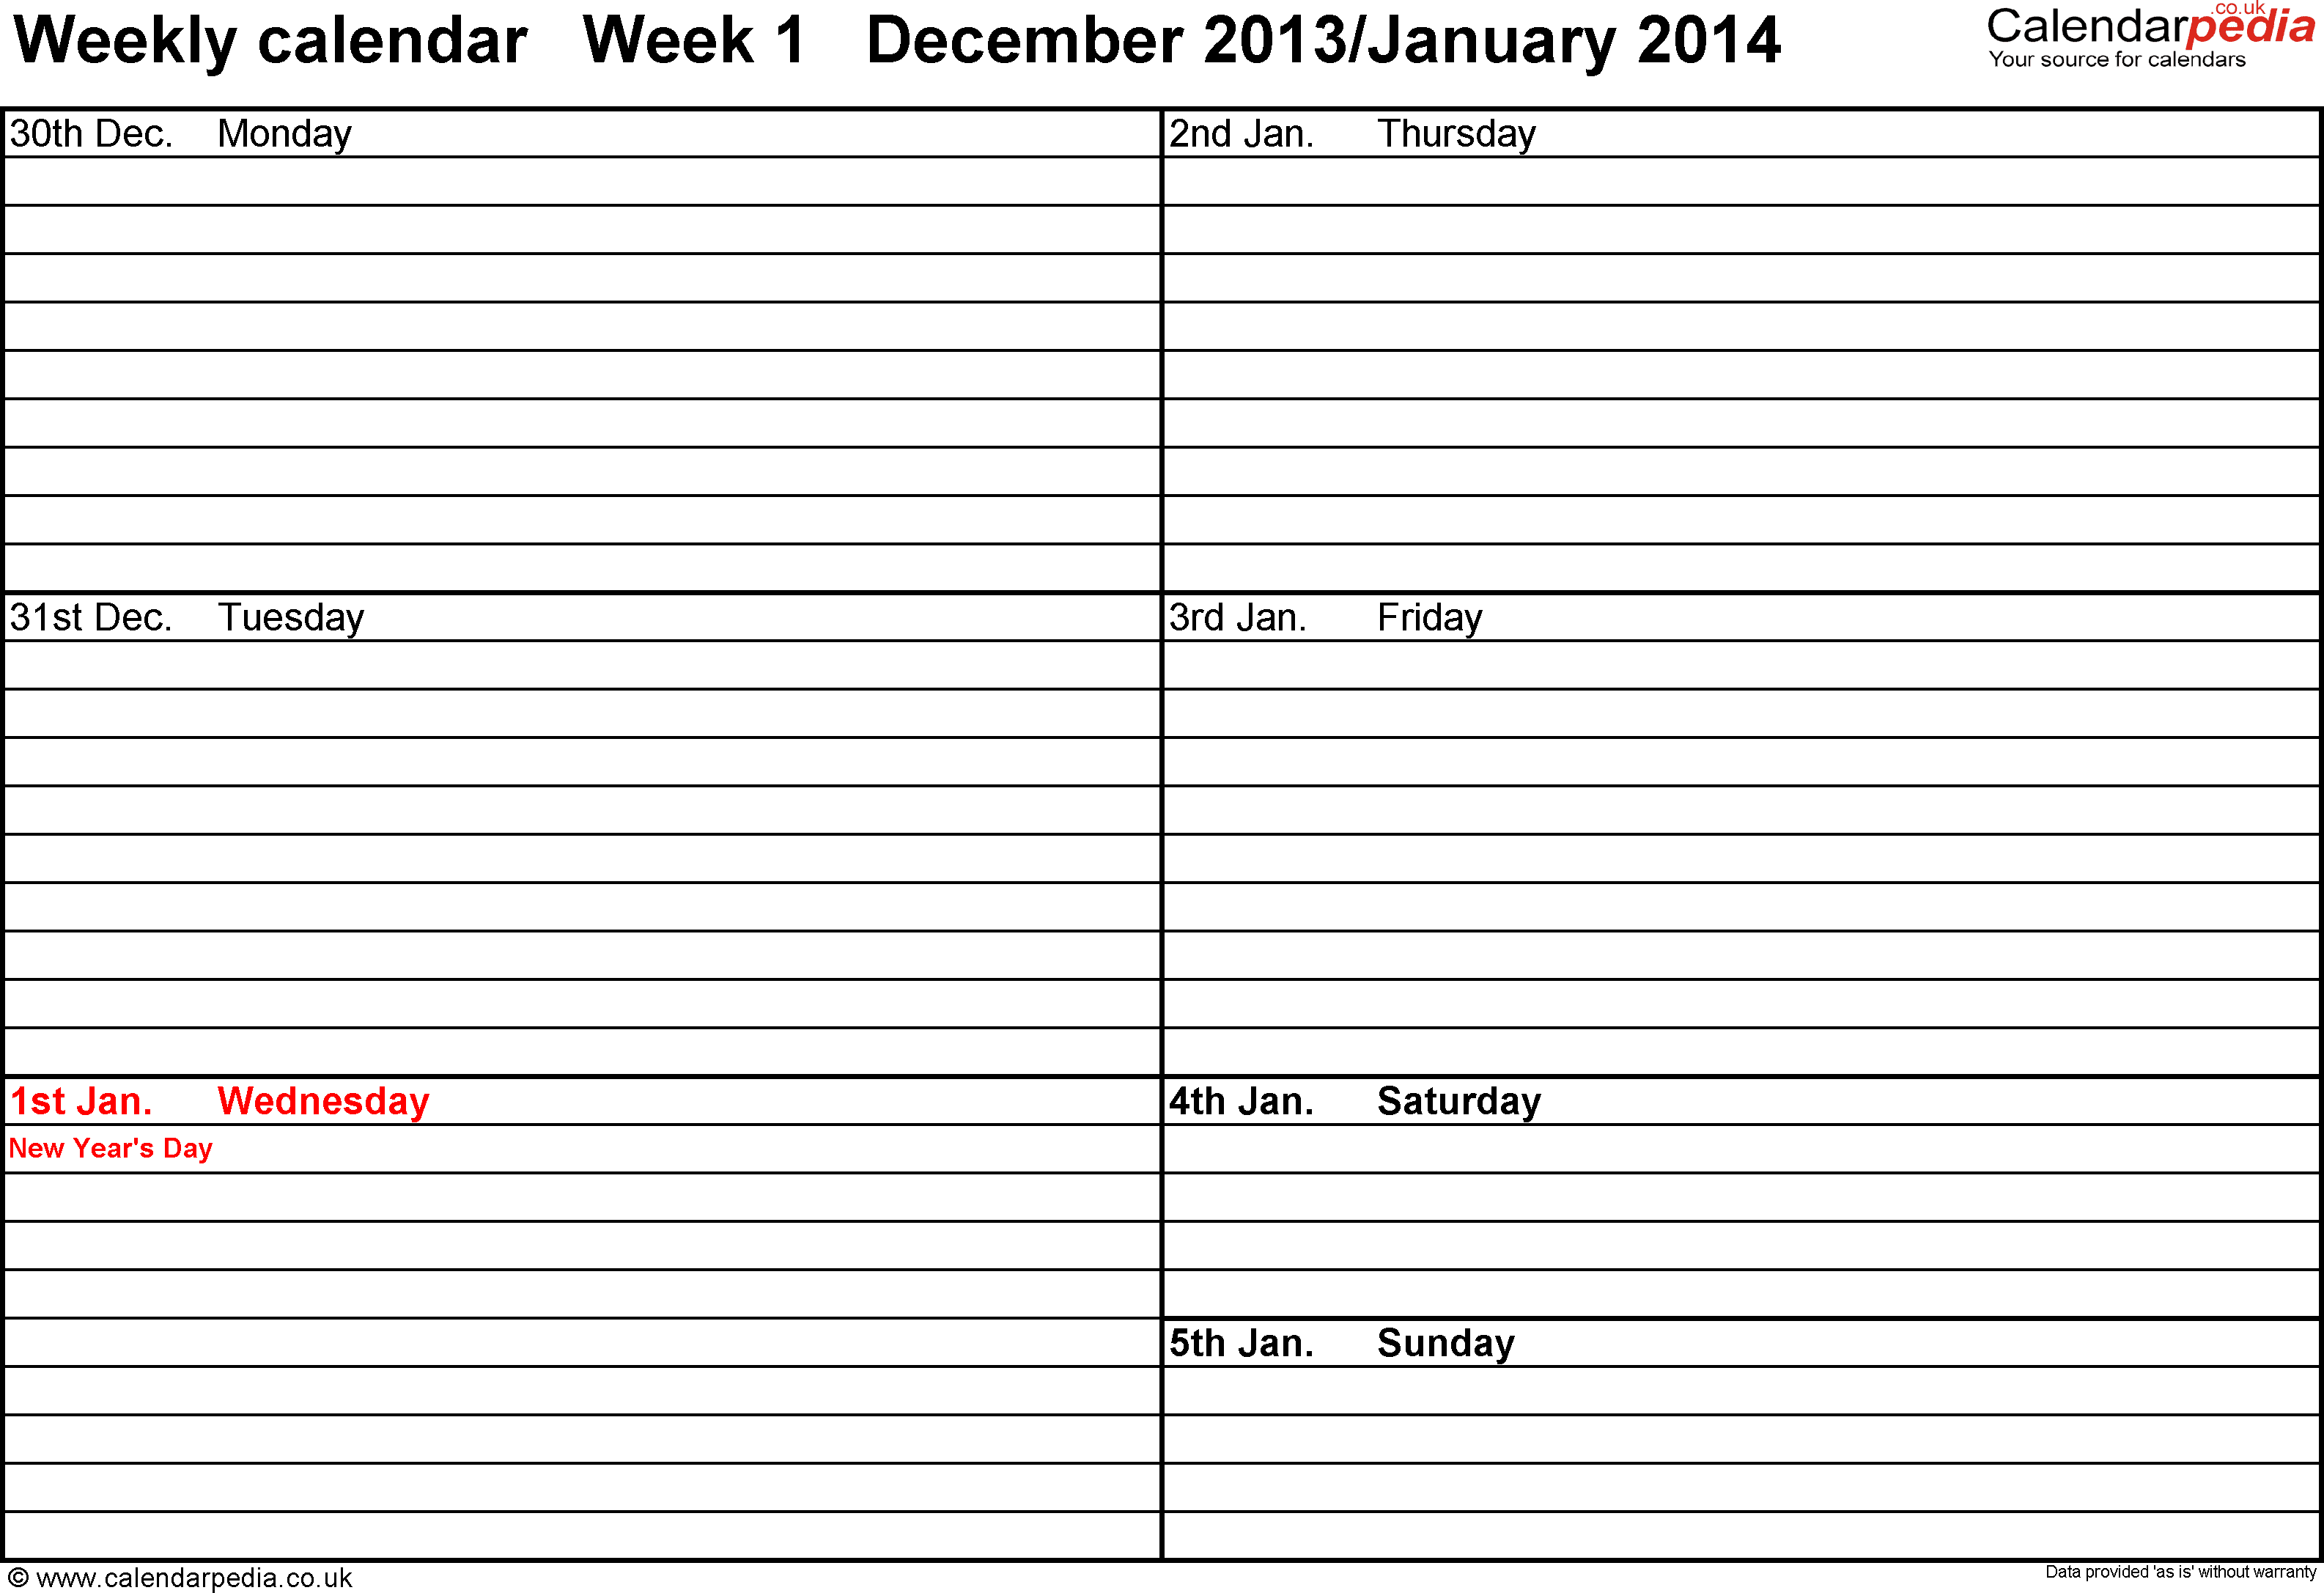 Weekly calendar 2014 UK free printable templates for Excel – 3 Week Calendar Template